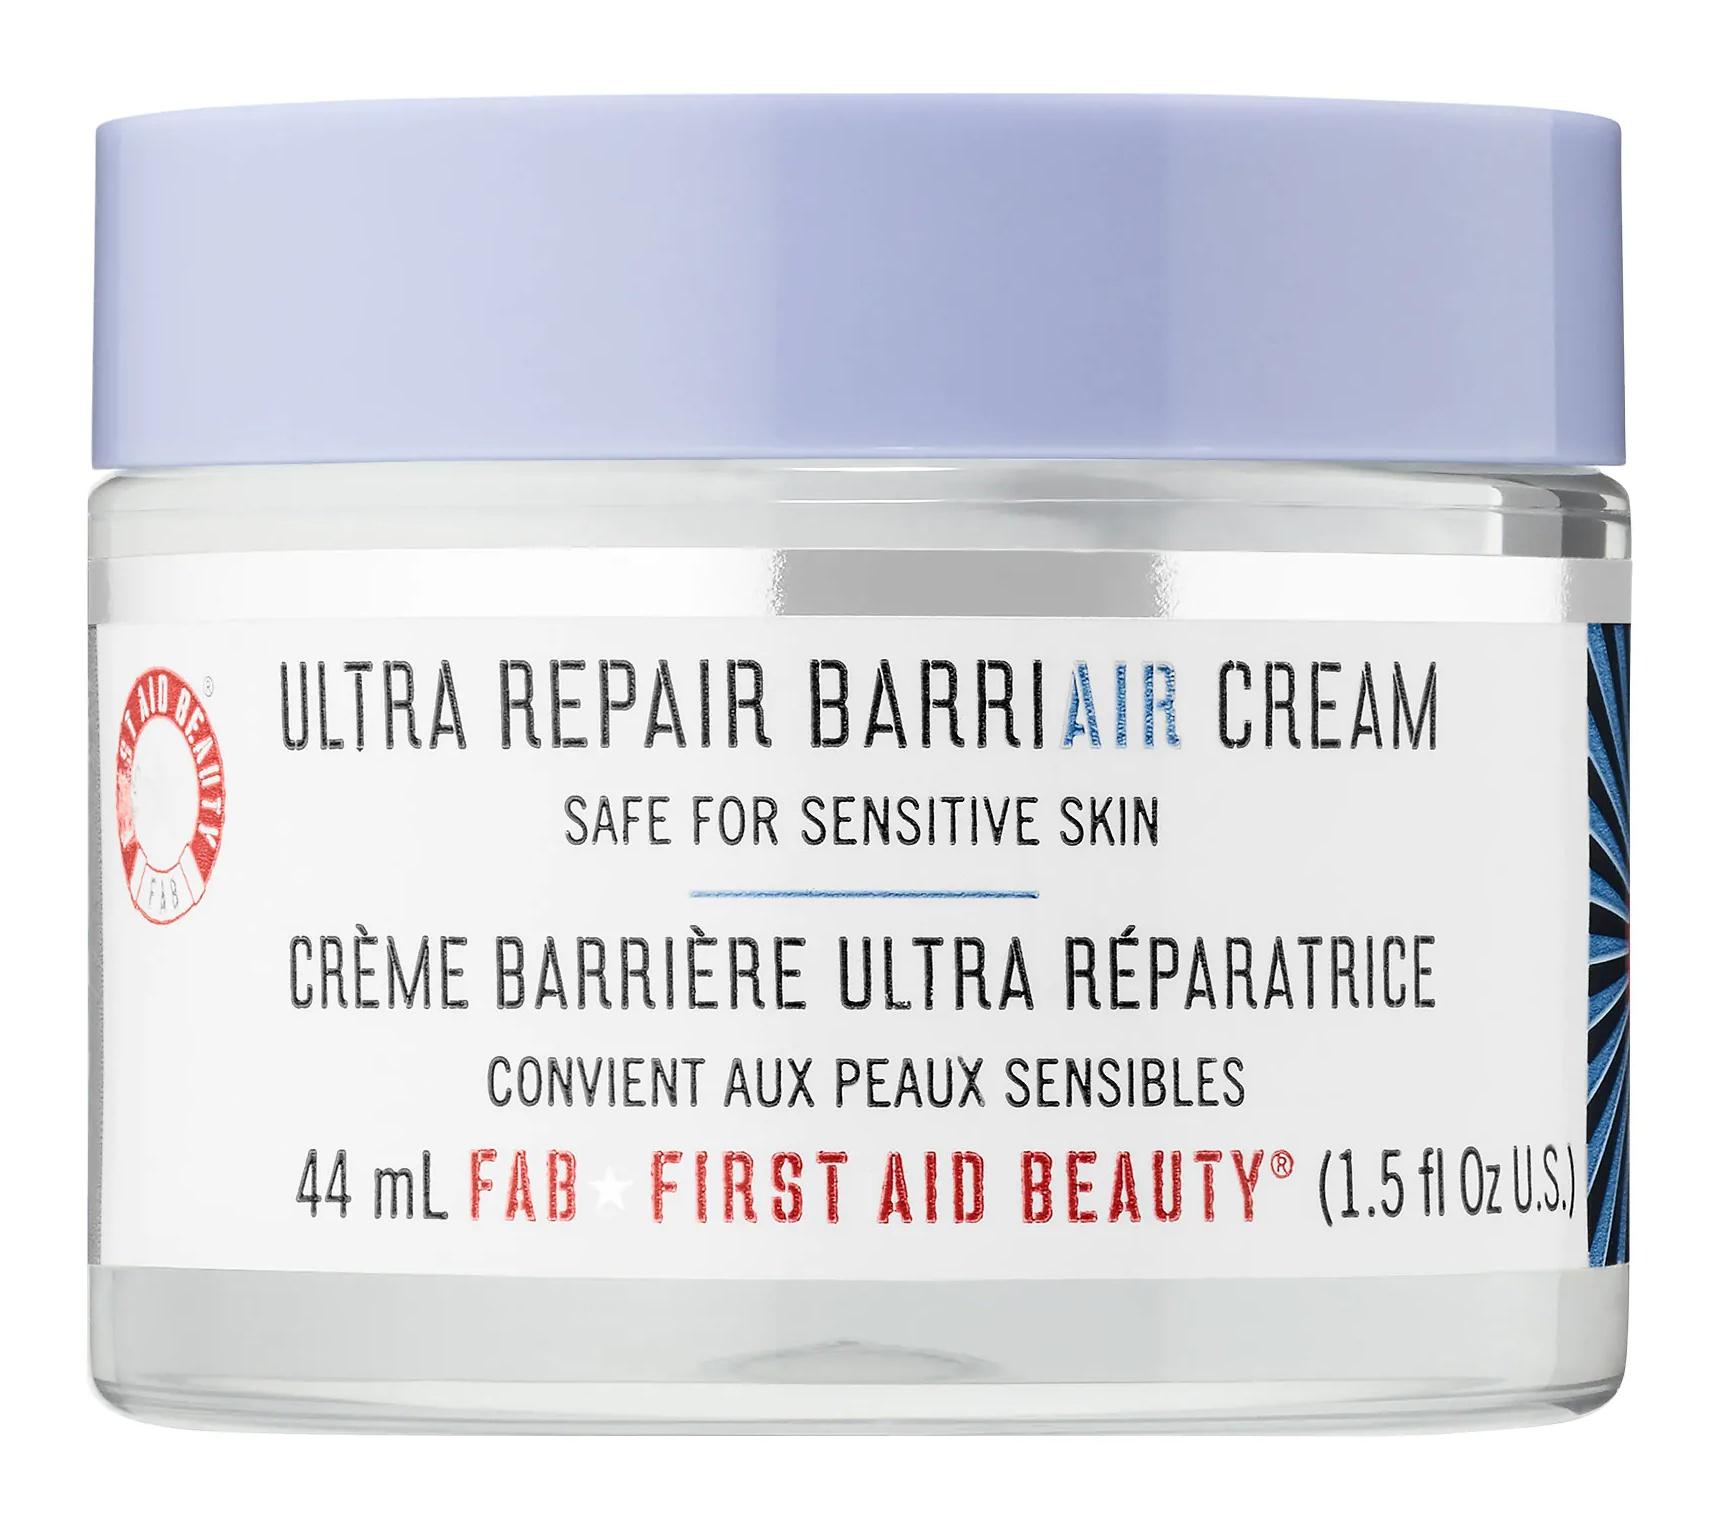 First Aid Beauty Ultra Repair Barriair Cream